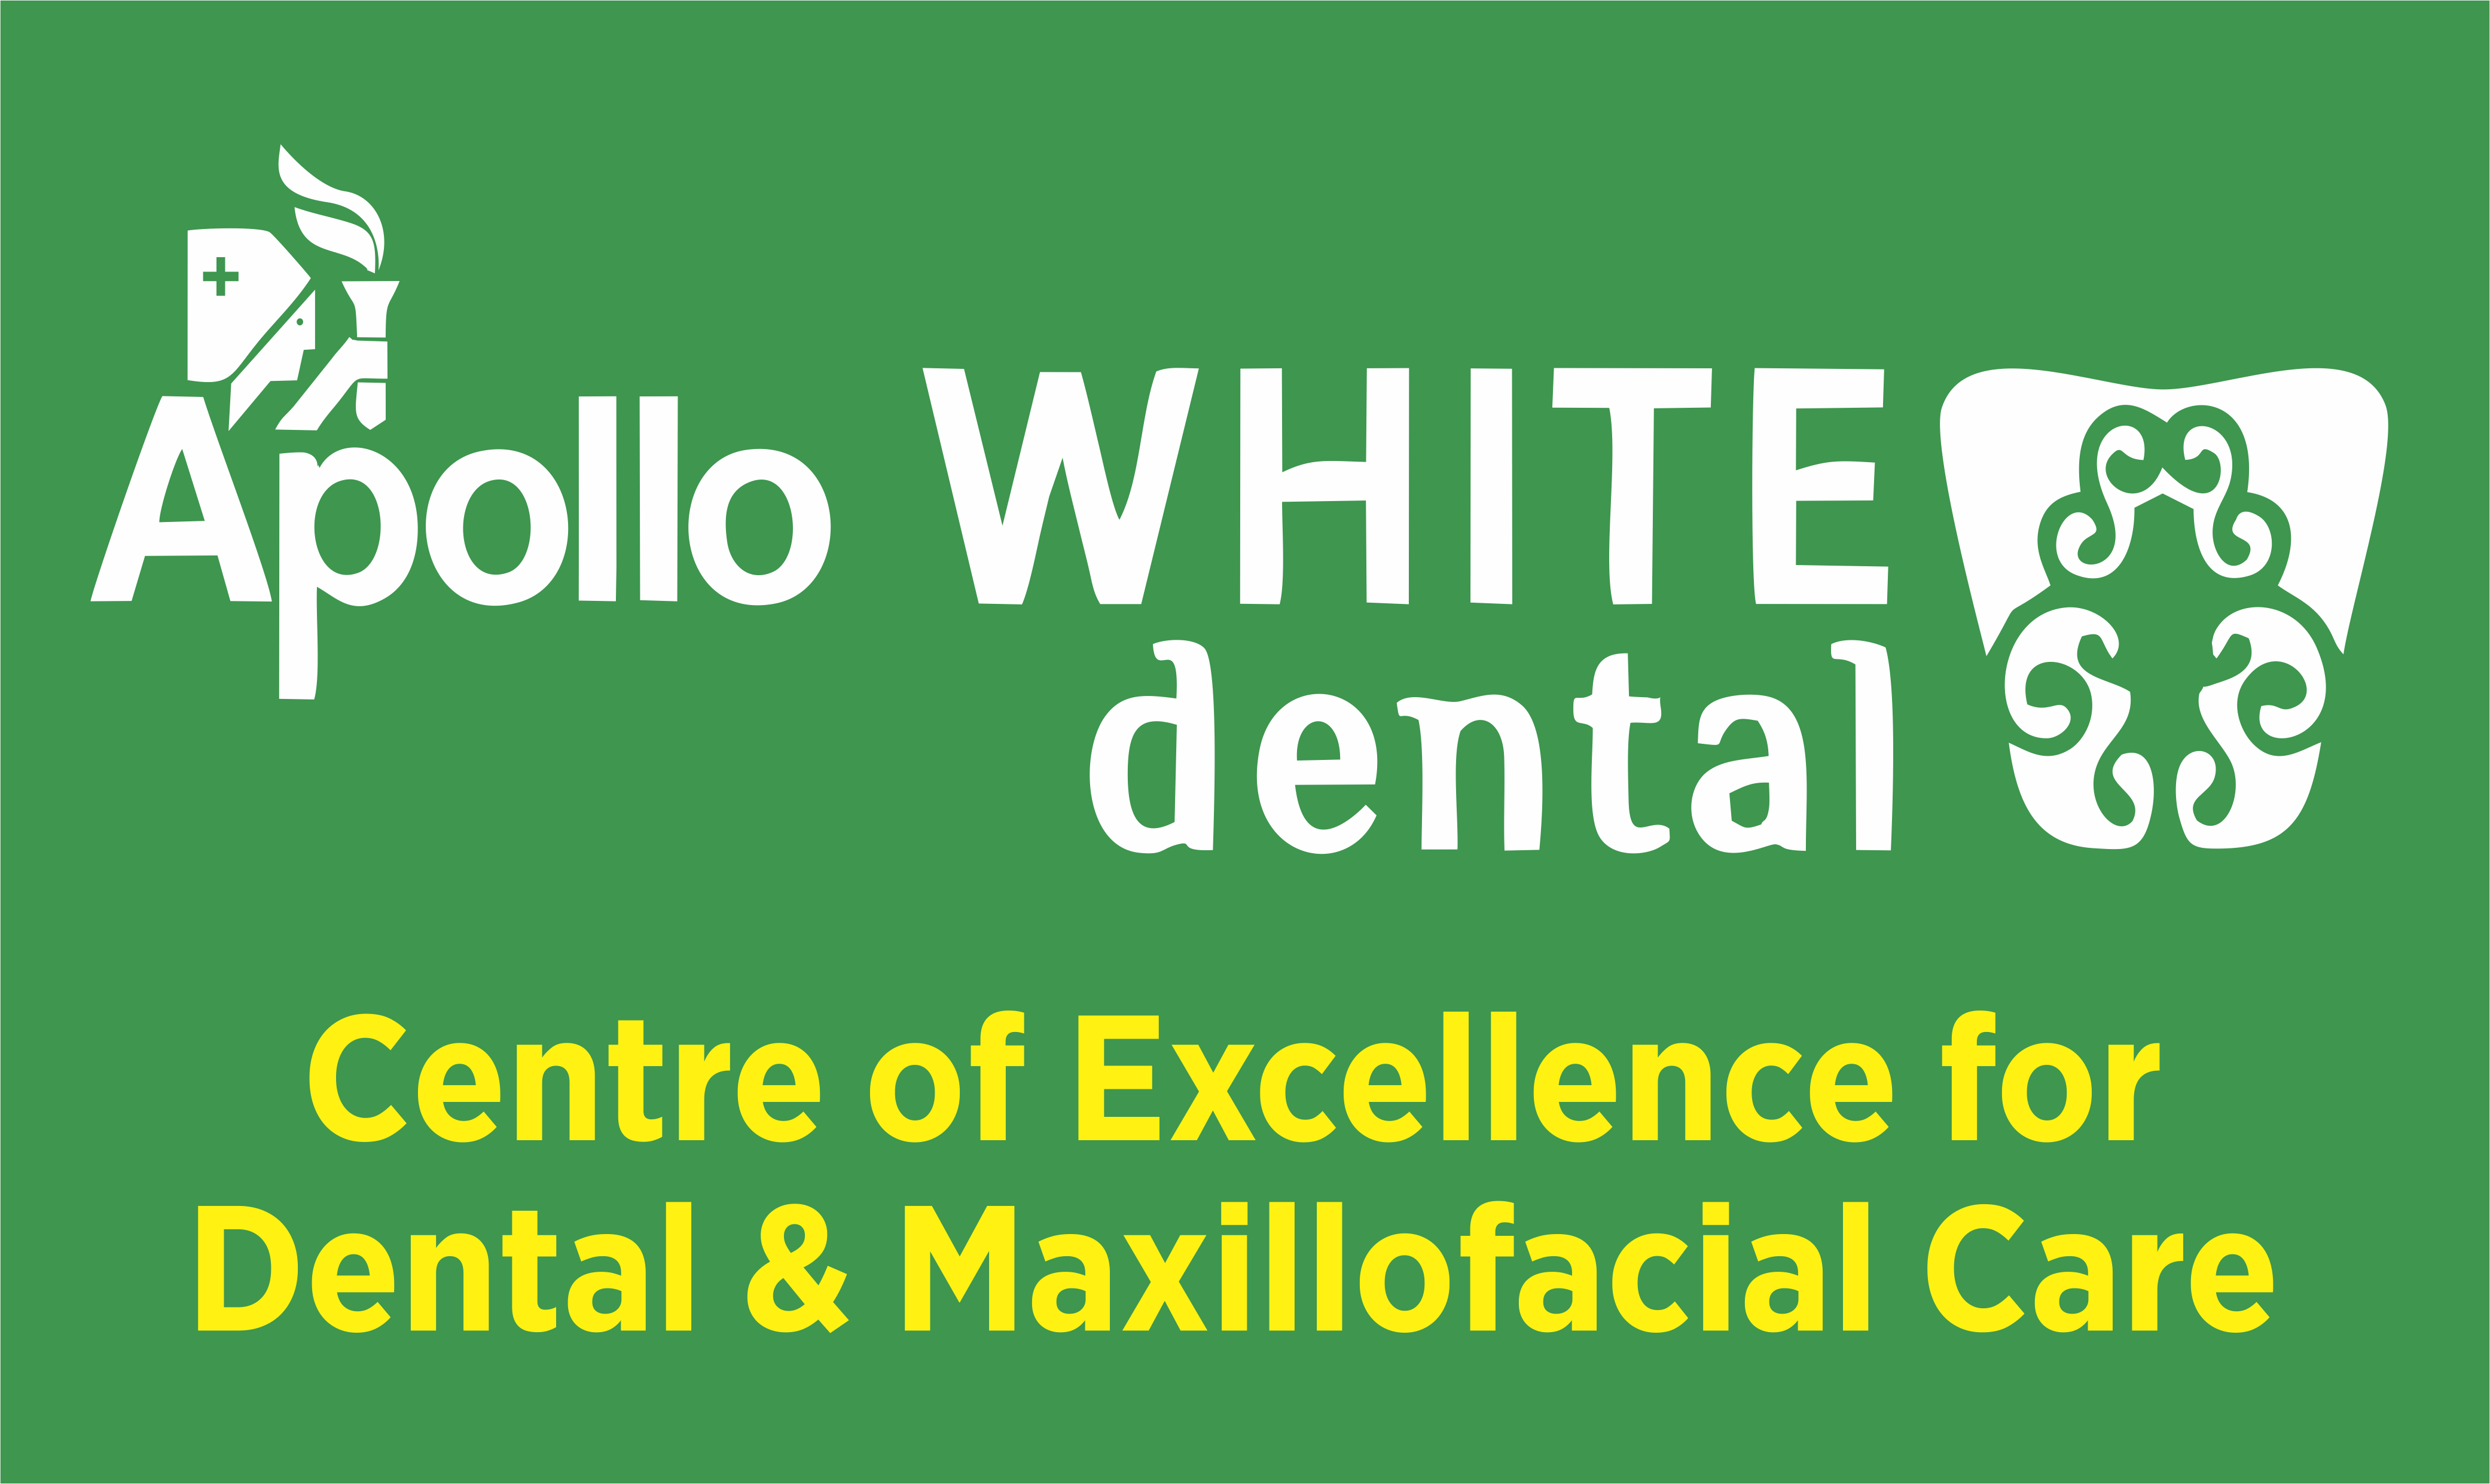 Apollo White Dental, Multi-Speciality Clinic in HSR Layout